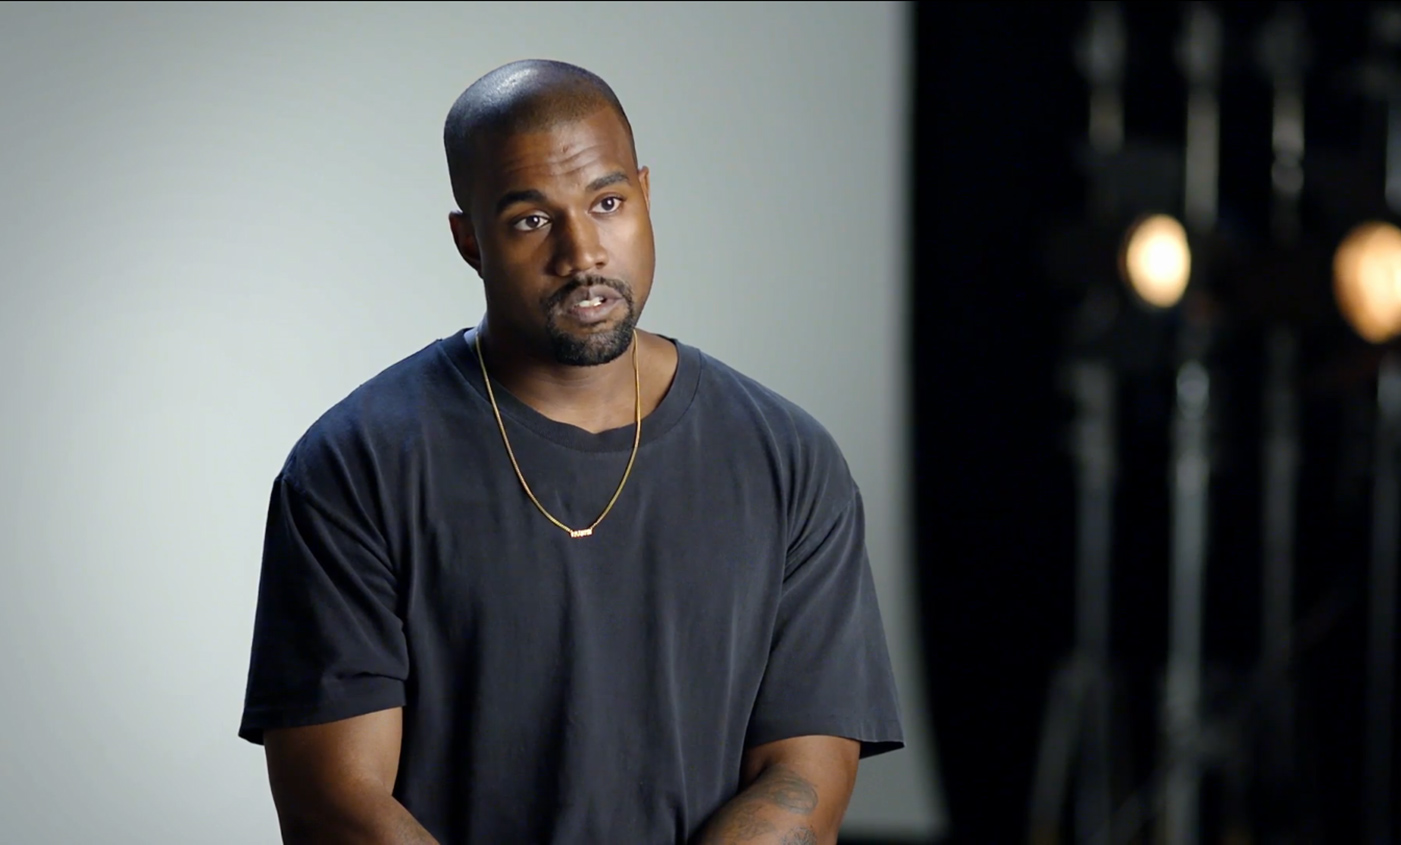 Kanye West: 'I Don't Care About Having a Legacy'